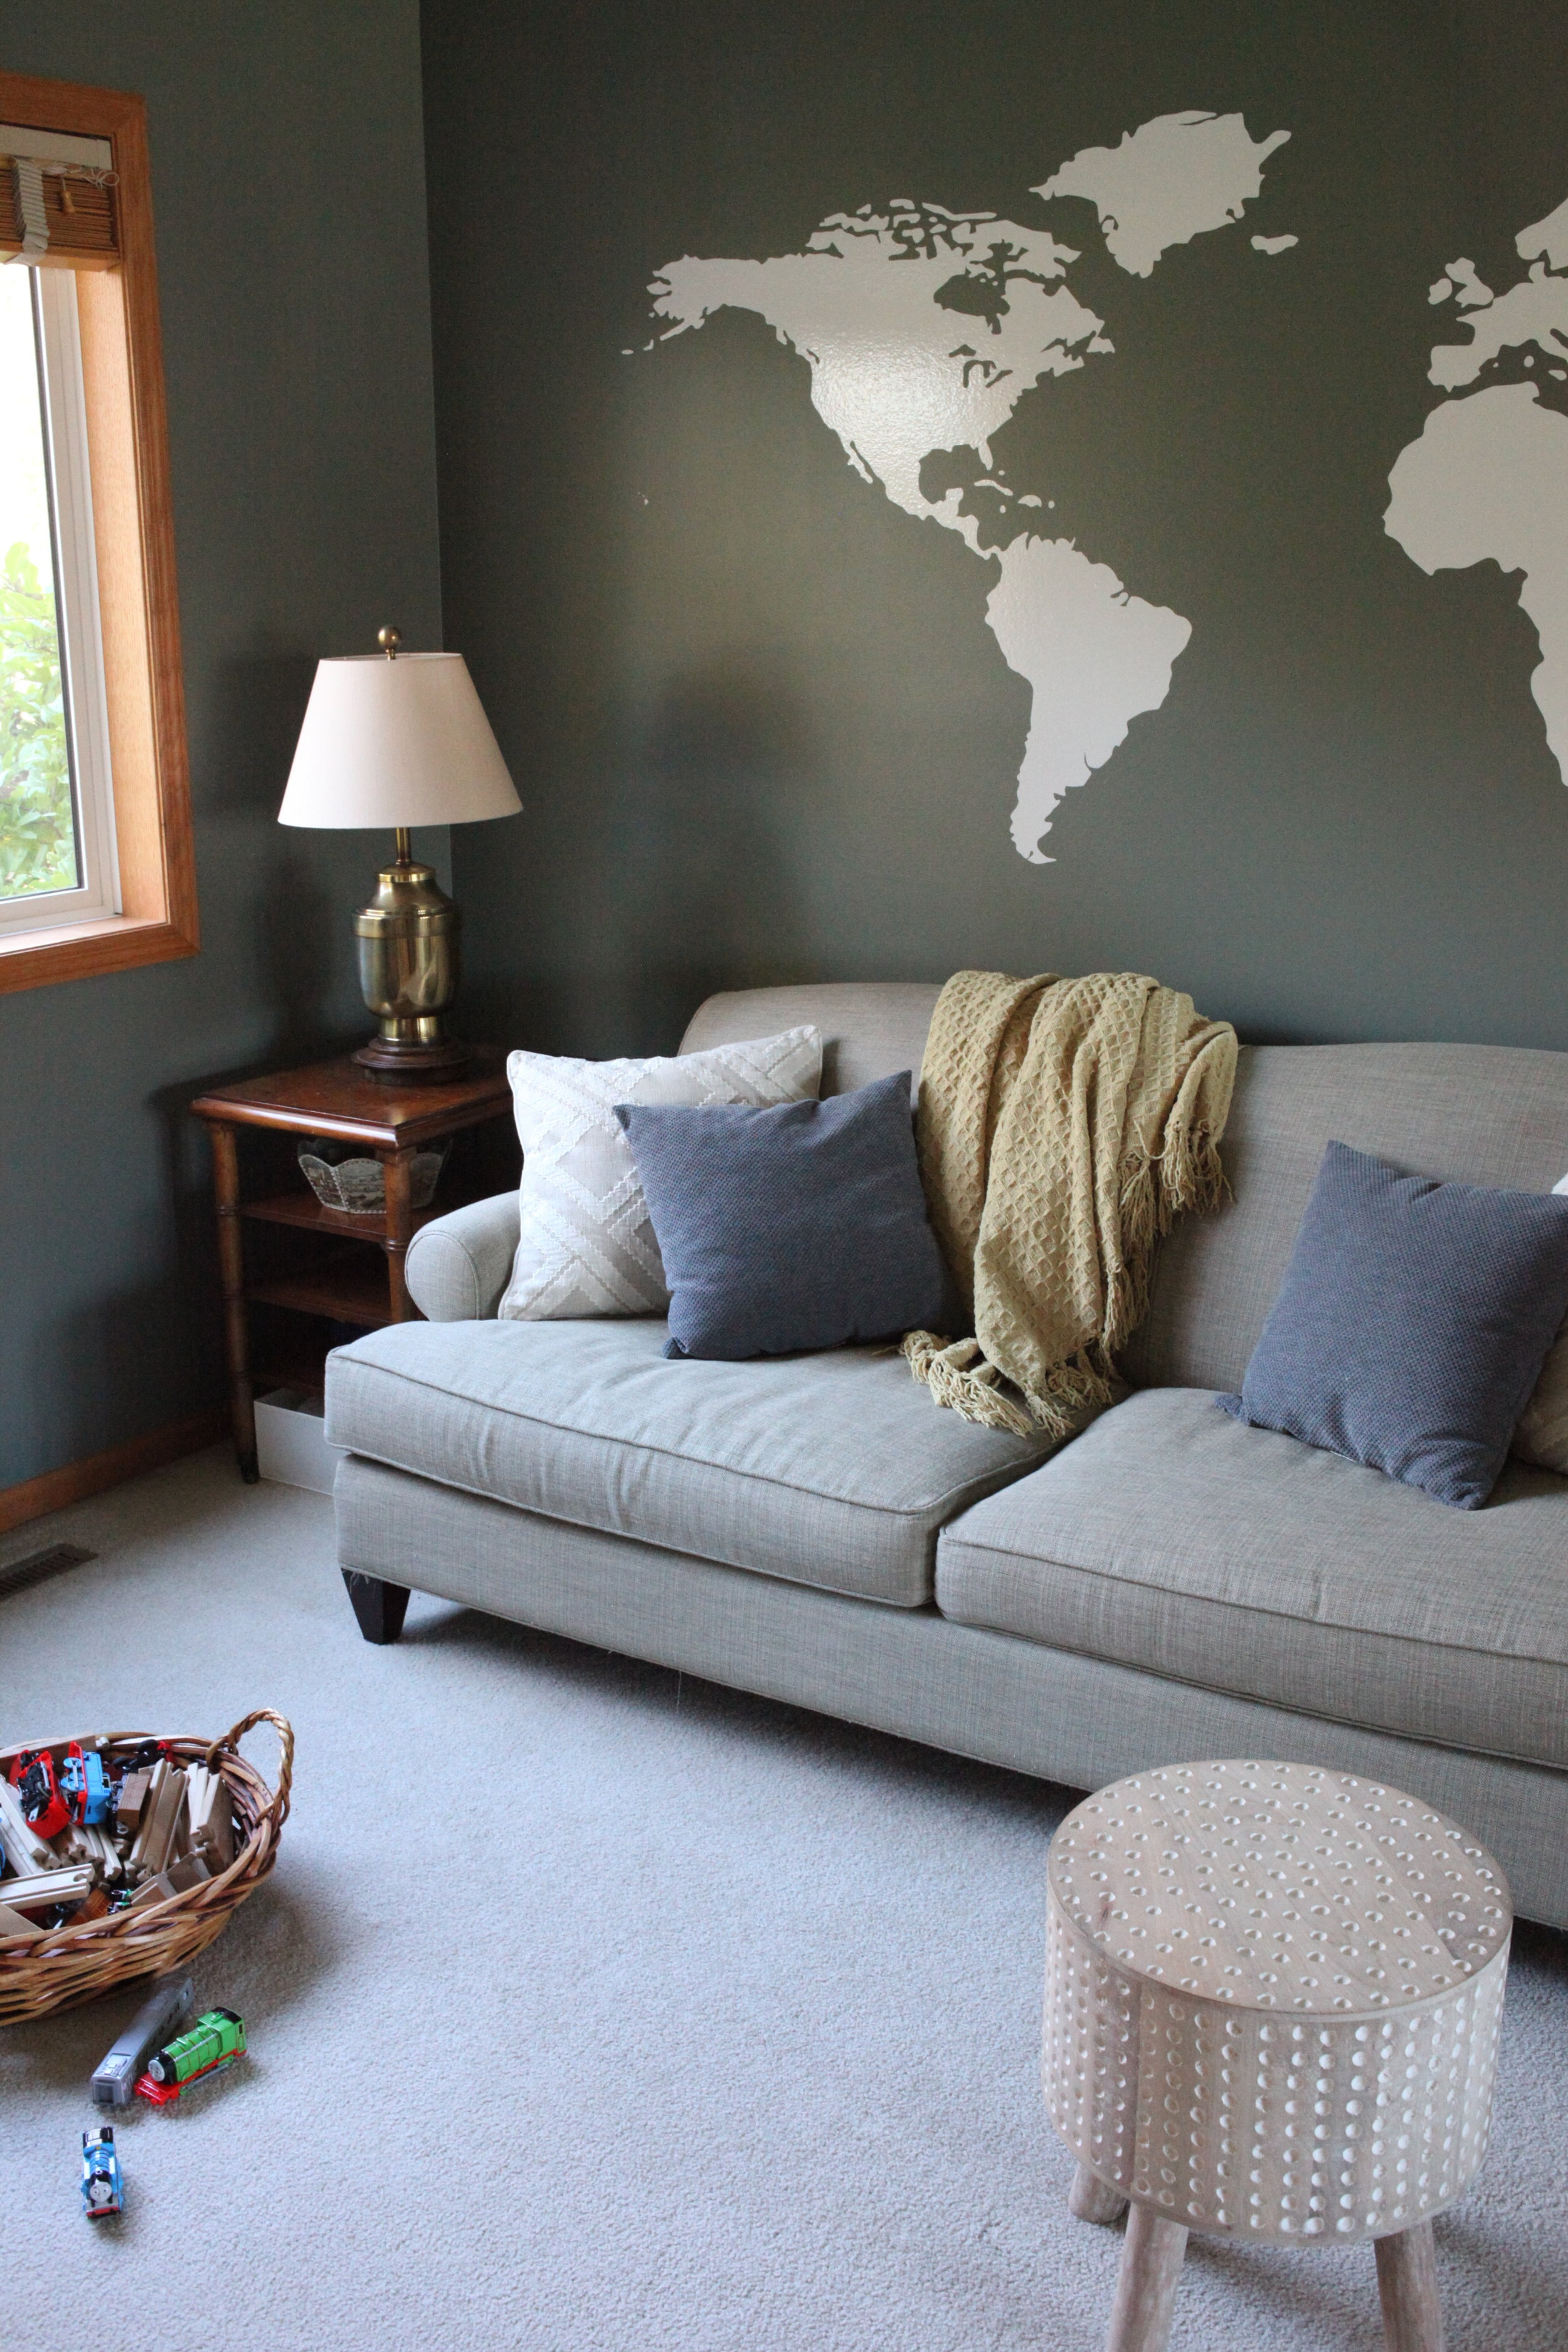 Living room with world decal and cozy sofa.